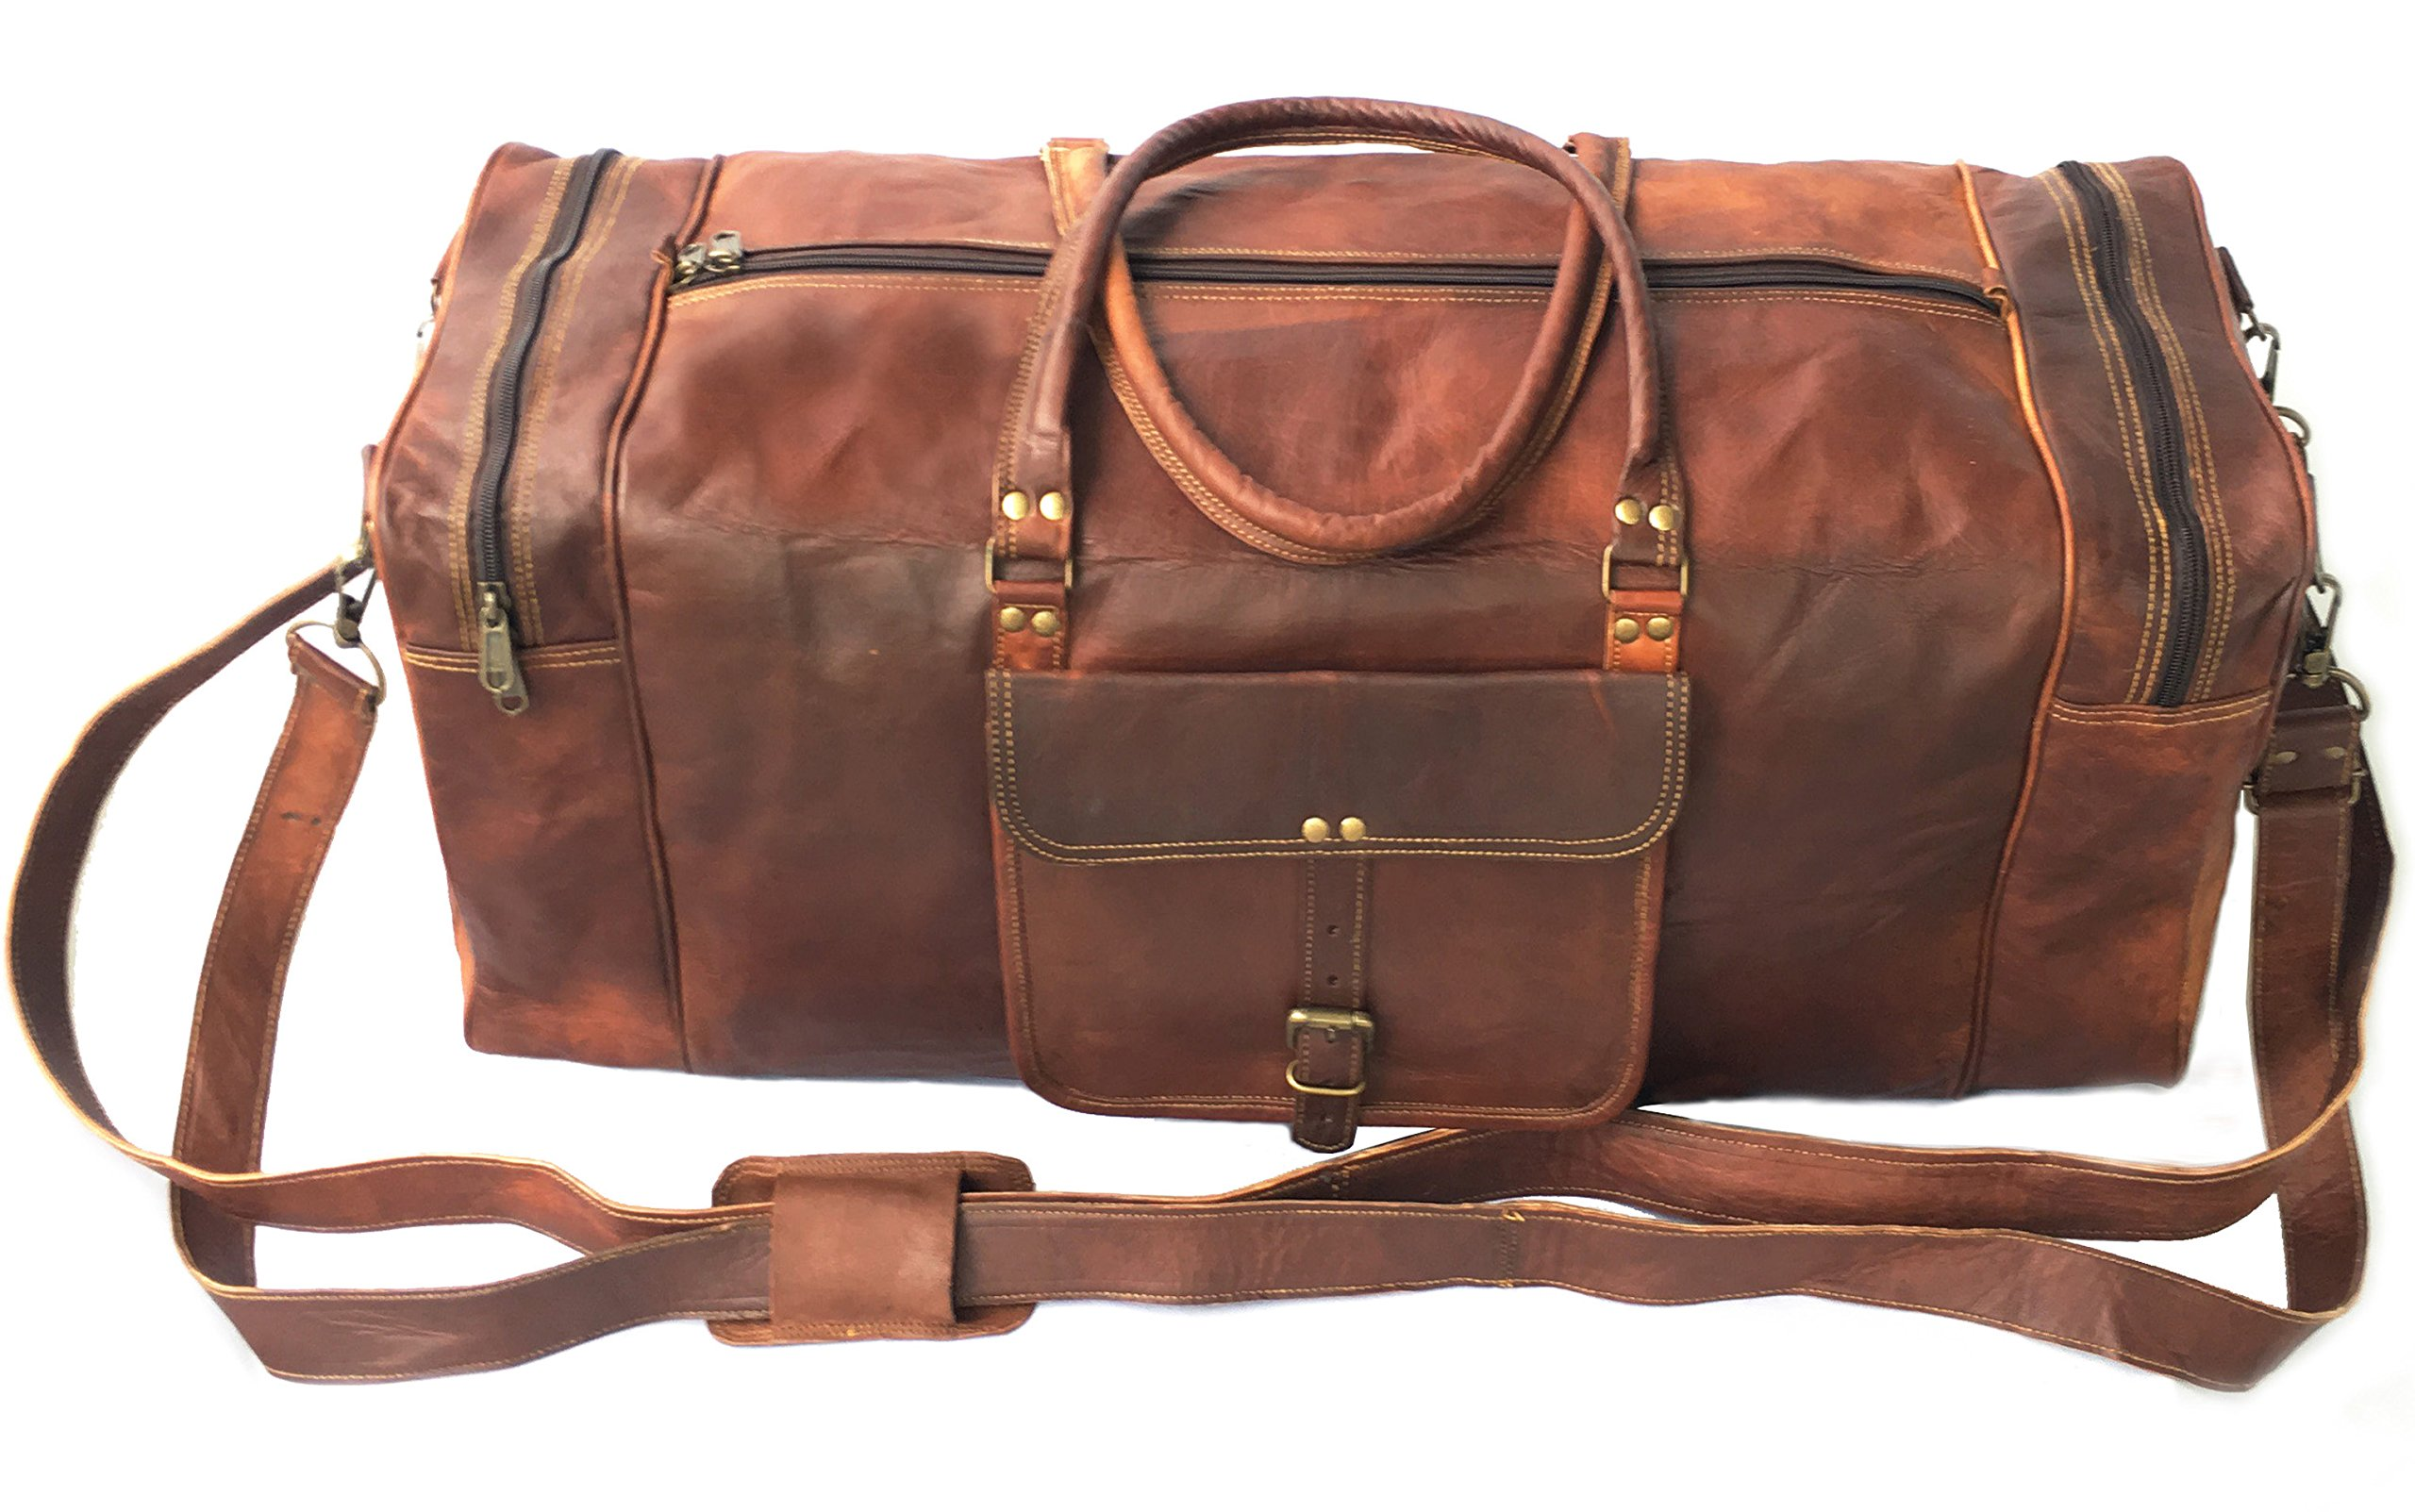 28'' Inch Real Goat Vintage Leather Large Handmade Travel Luggage Bags in Square Big Large Brown bag Carry On By KK's leather by cuero (Image #1)